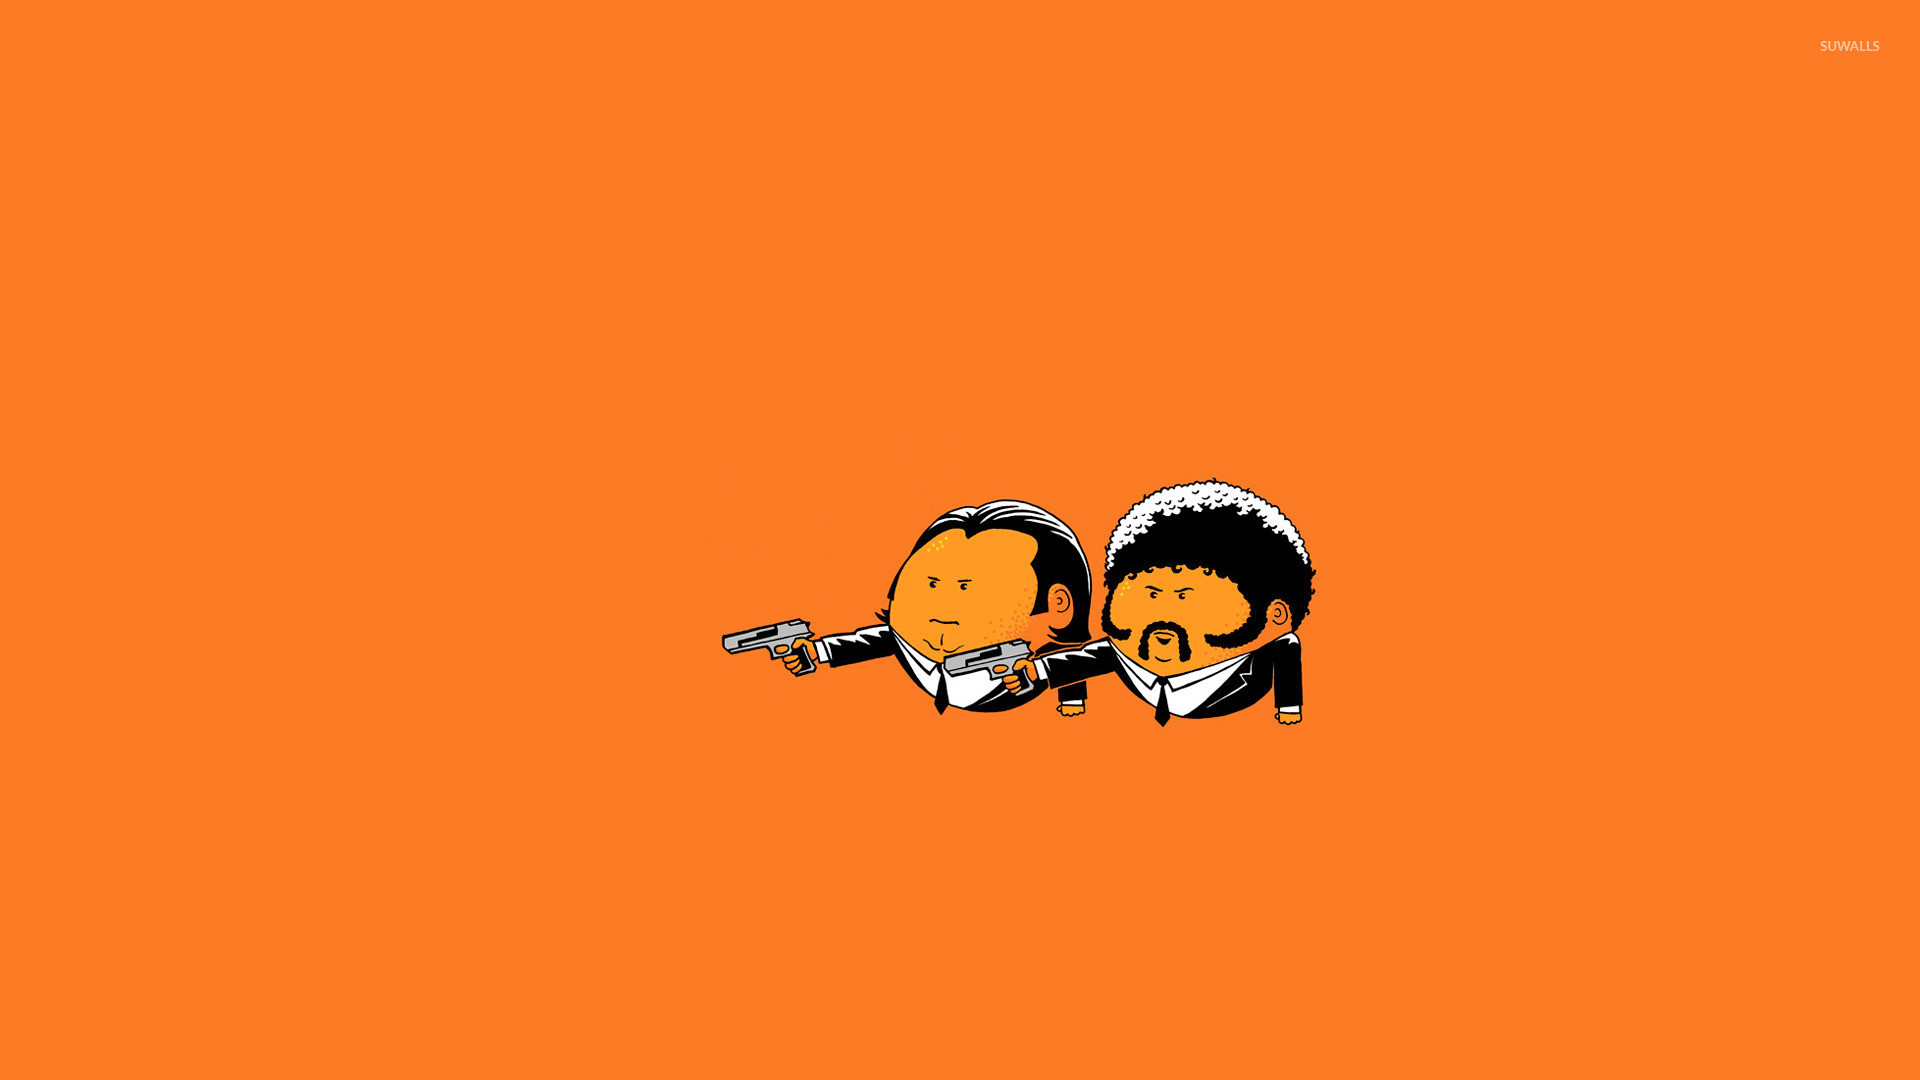 Pulp Fiction Oranges wallpaper – Funny wallpapers – #15659